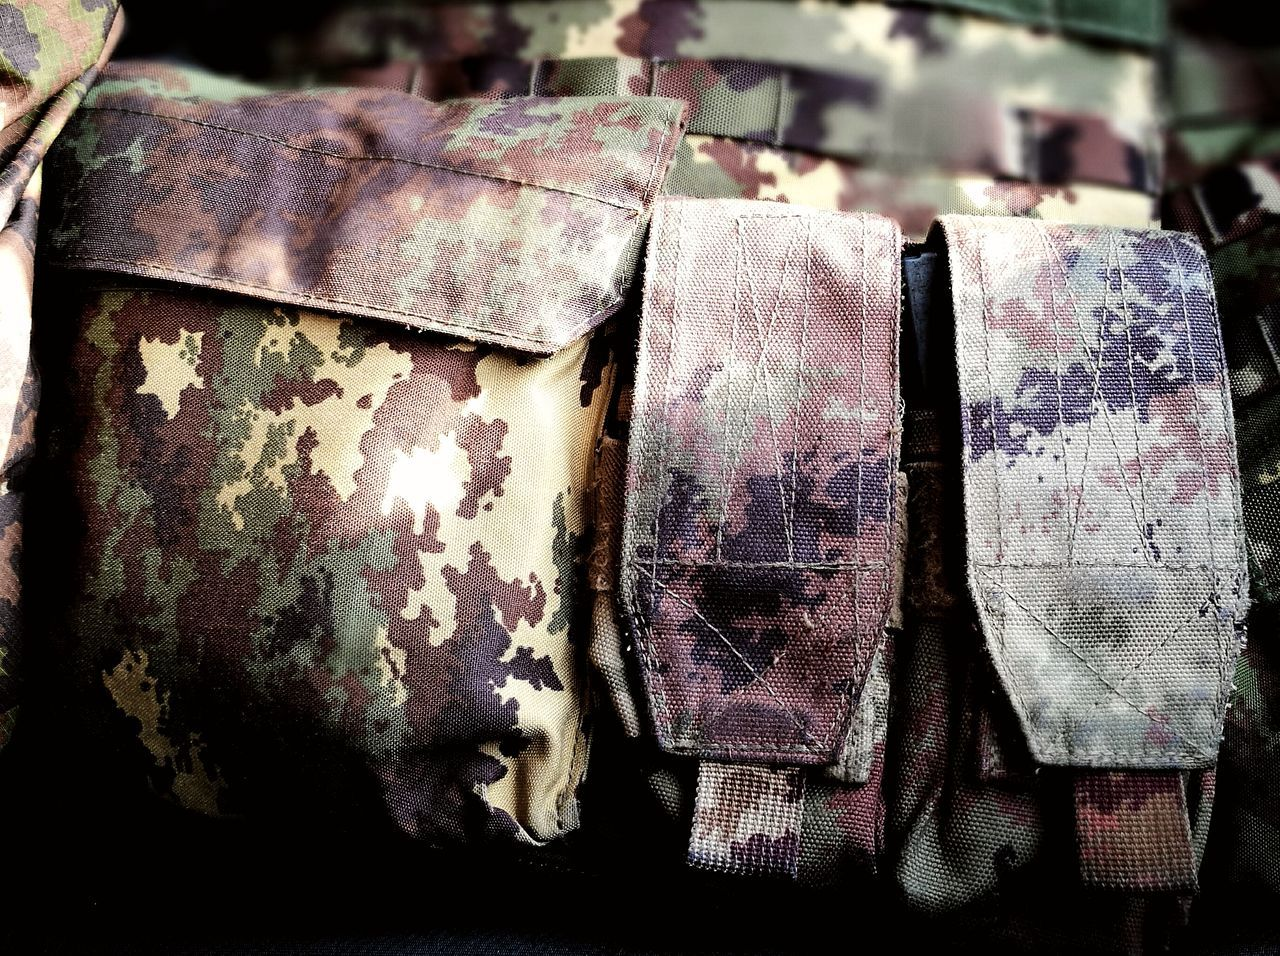 Day HuaweiP9 Hobby Photography Colors Army Military Military Life Mimetism